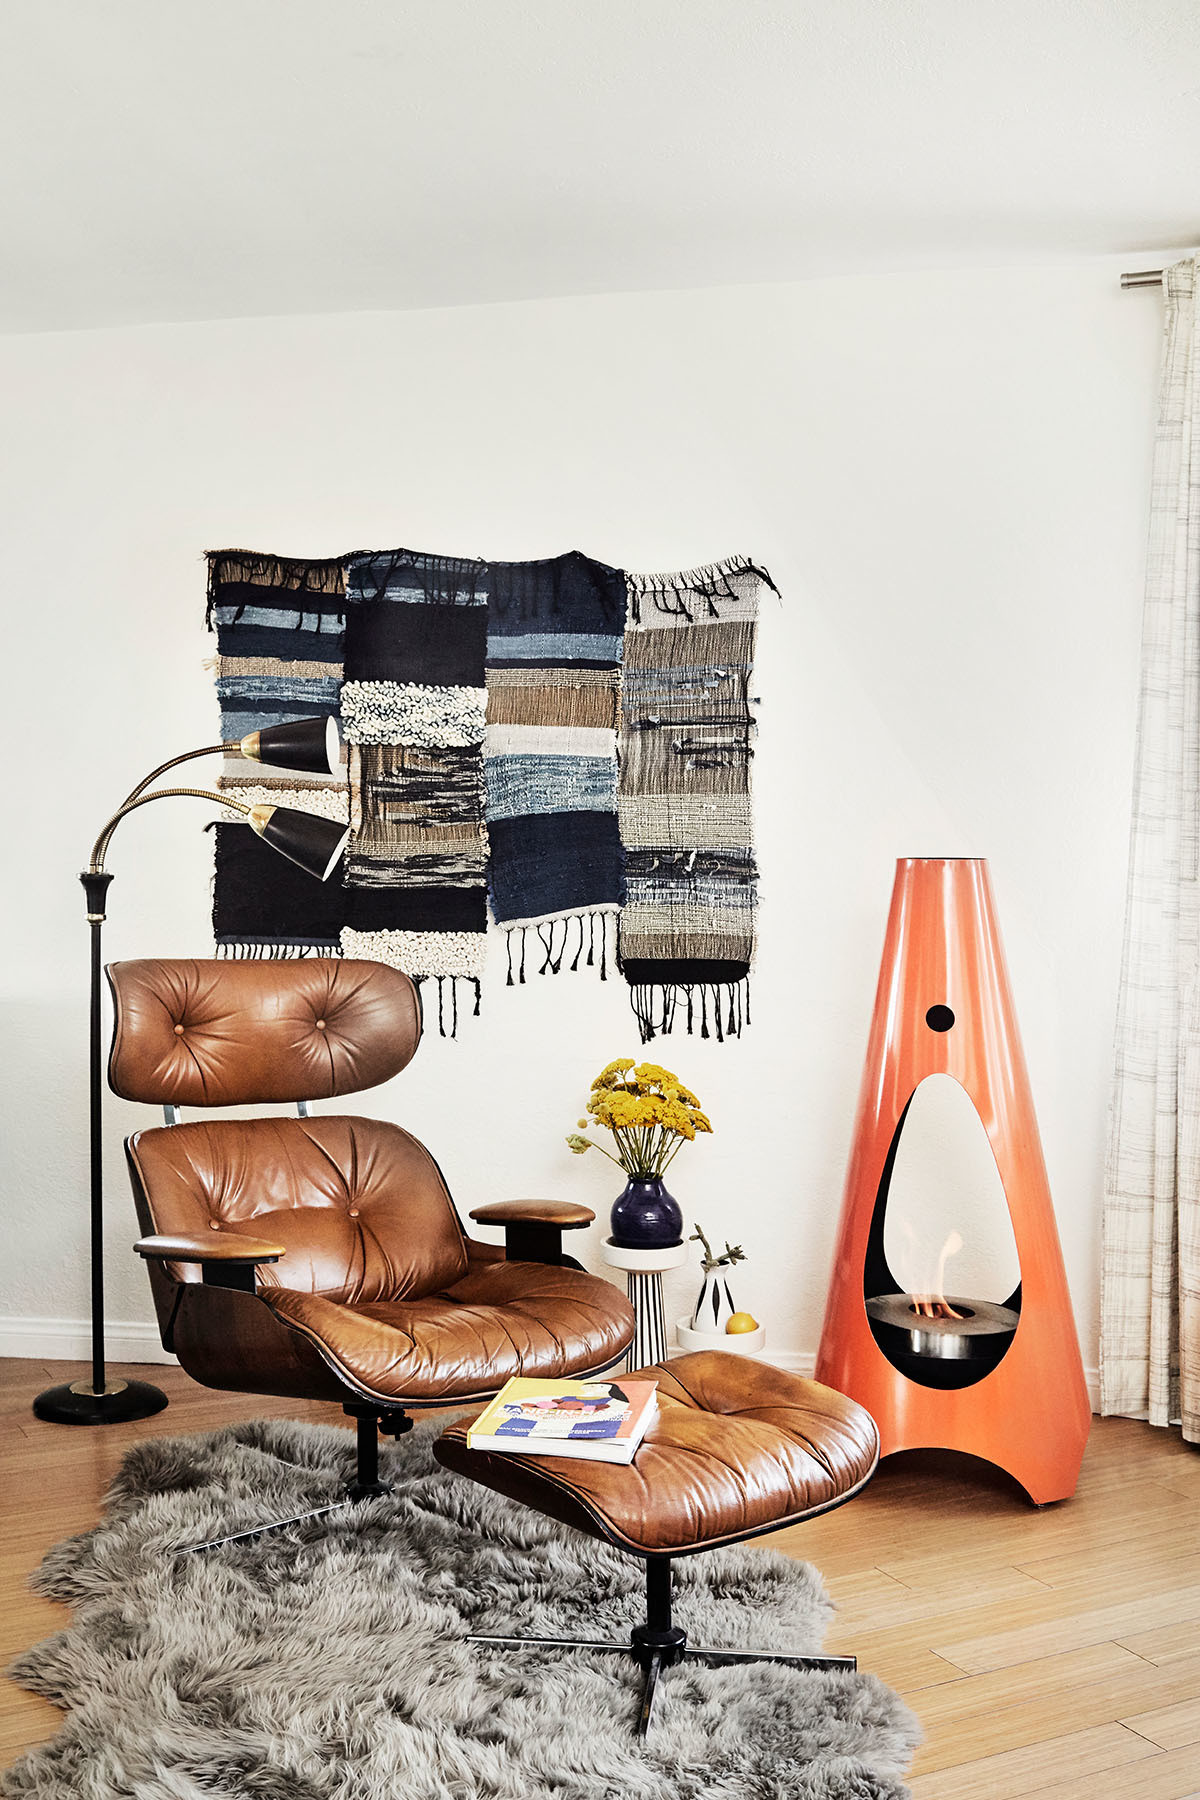 An Eames Lounge Chair and Ottoman (sourced via Pasadena Antique Center) adhere to Calter's Cali-cool, eclectic style. Horne Fireplace | Overland Sheepskin | Janelle Pietrzak Wall Hanging | Vintage Lamp.